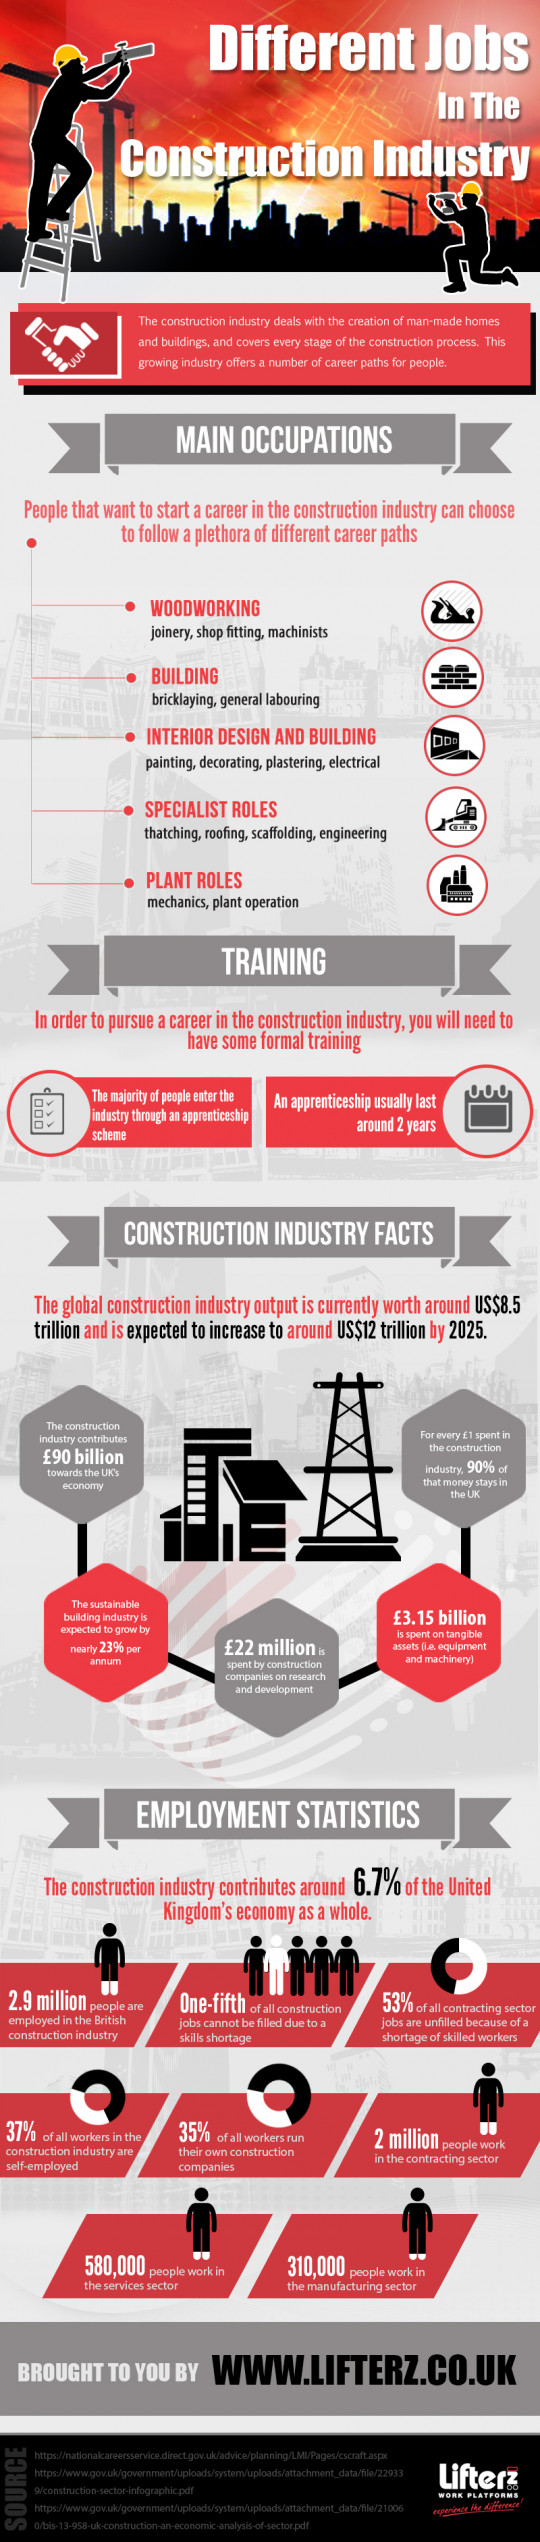 Different Jobs in the Construction Industry